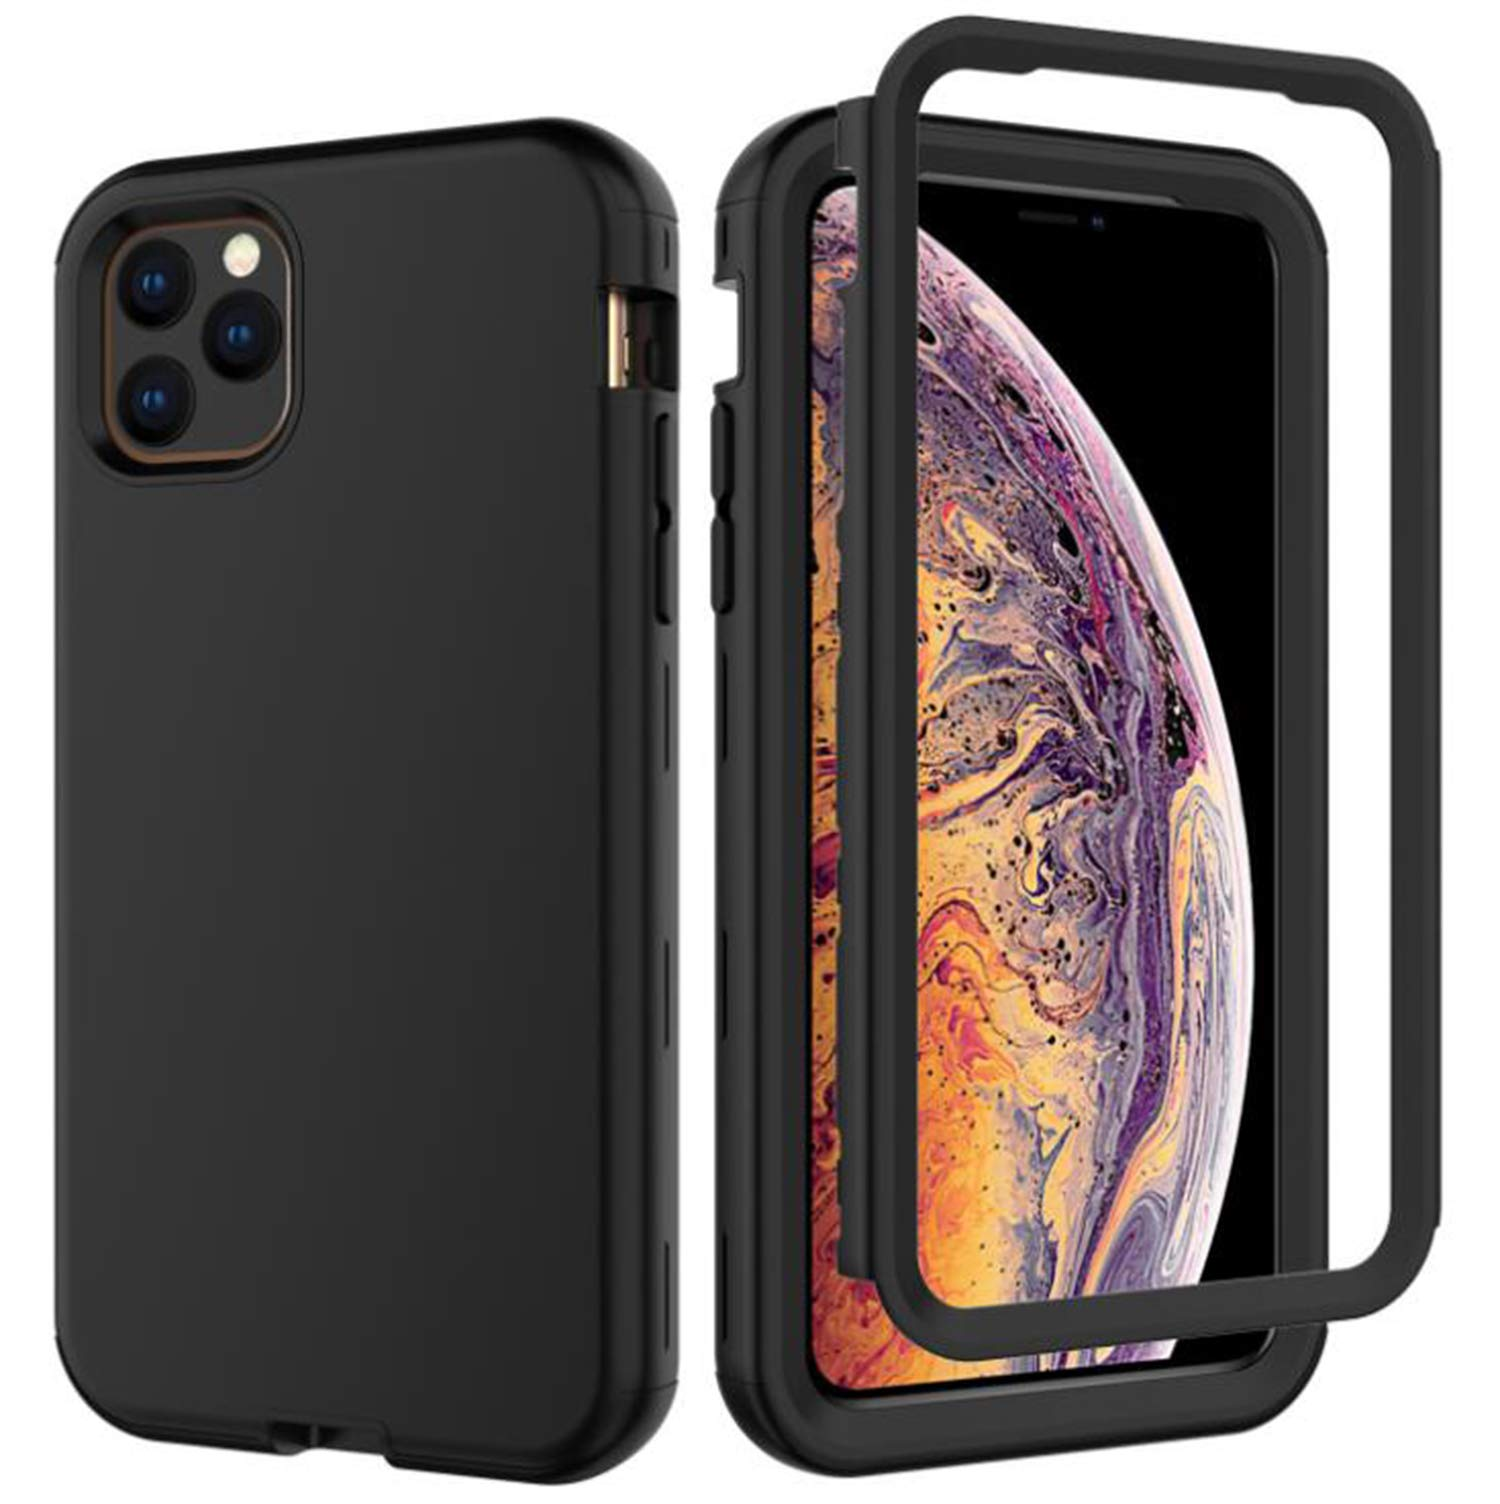 RANYOK Compatible iPhone 11 Pro Silicone Case, 360 Full Body Protection 3 in 1 Heavy Duty Defender Armor Rugged Hard PC Bumper Back Cover (5.8 inch) (Black)